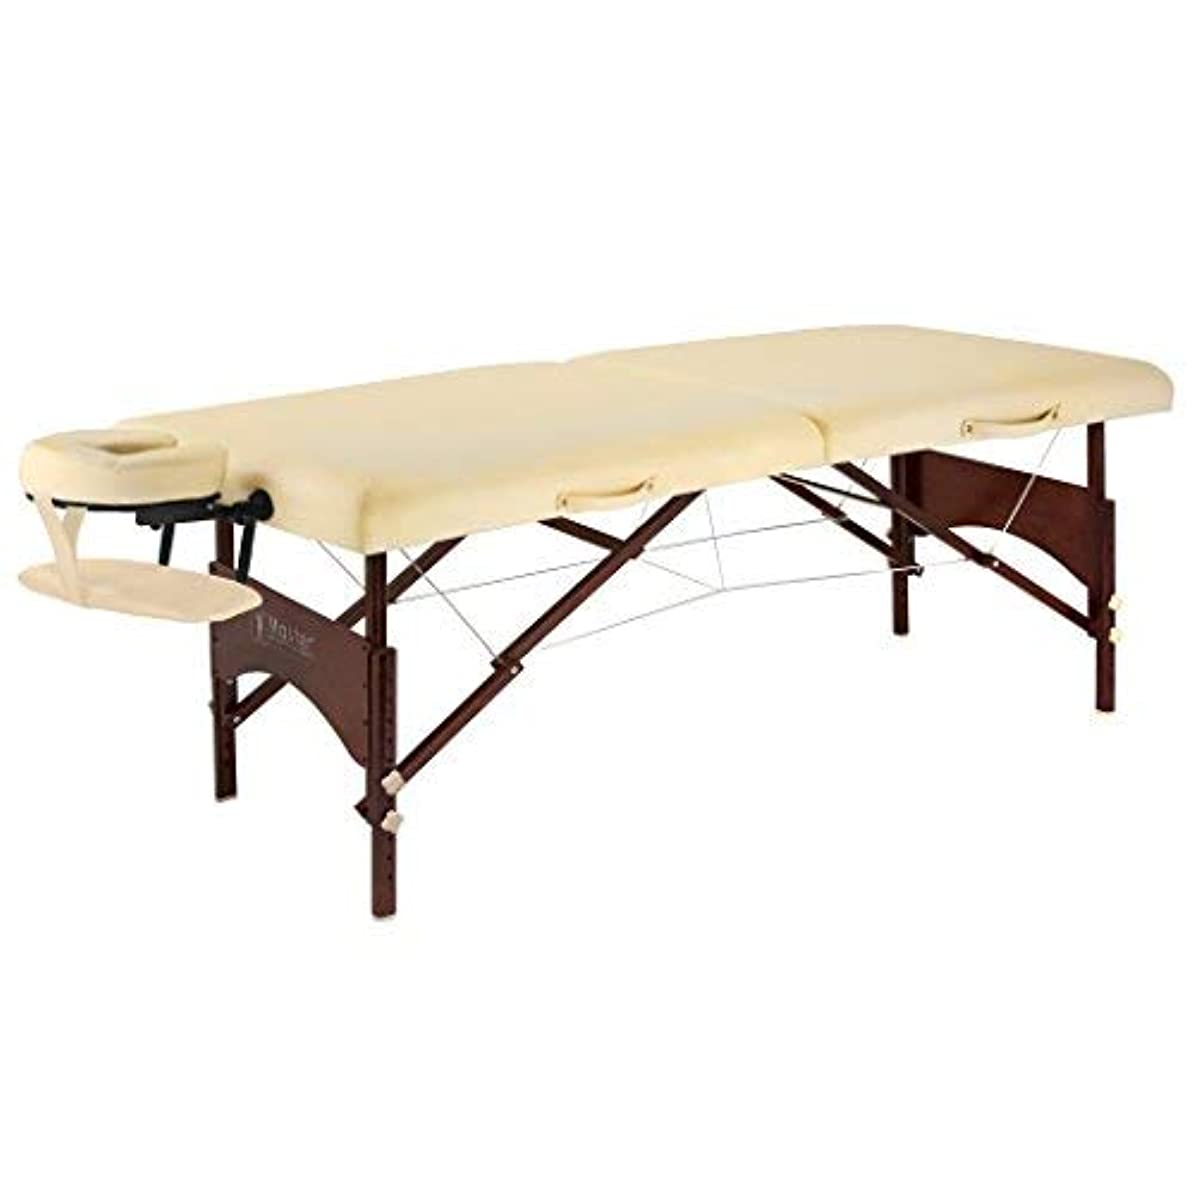 生き返らせる柔らかいプットMaster Massage 28 Argo Portable Massage Table in Cream with Walnut Legs [並行輸入品]